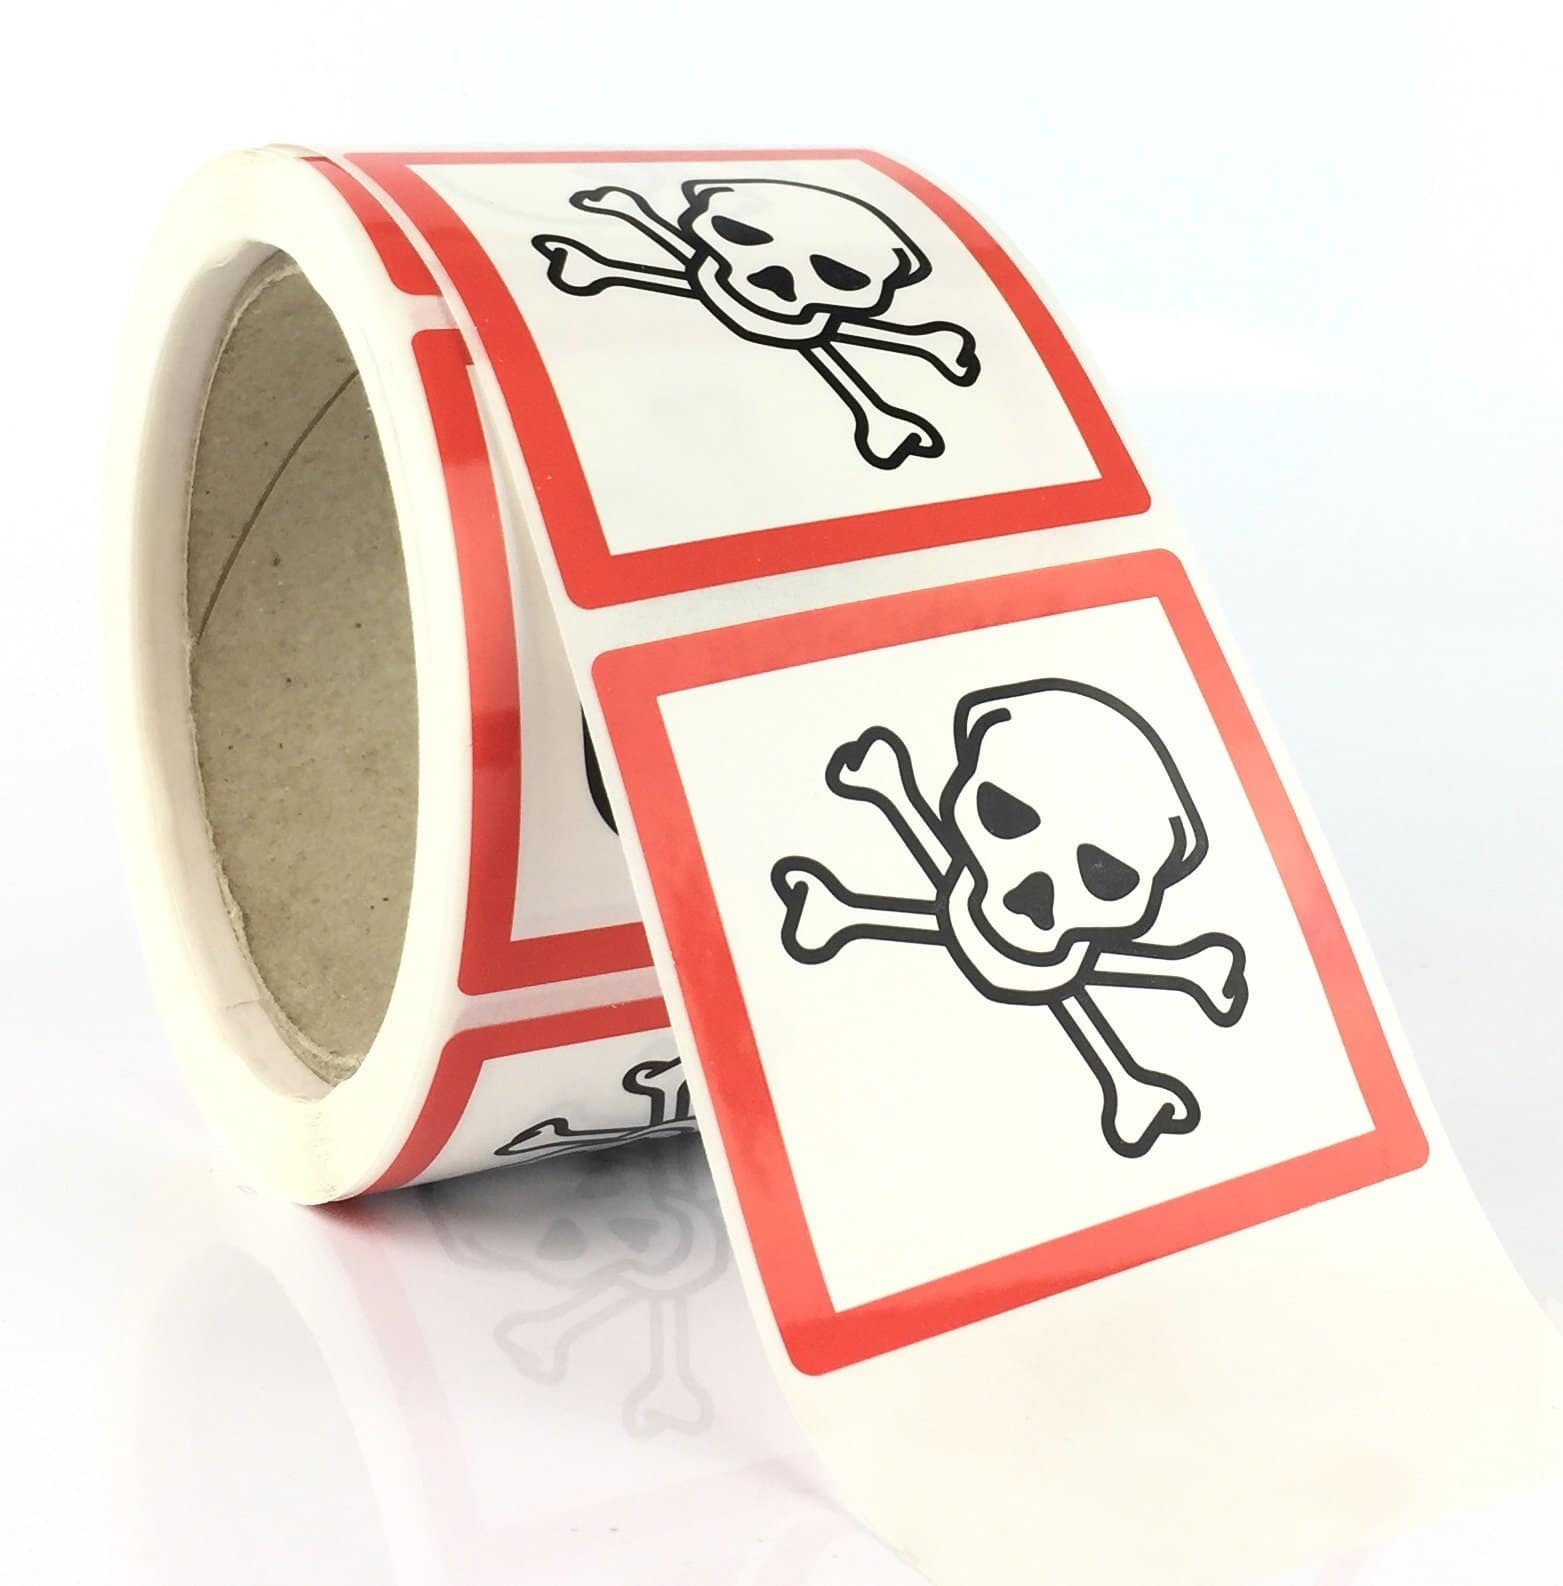 ghs06 labels toxic